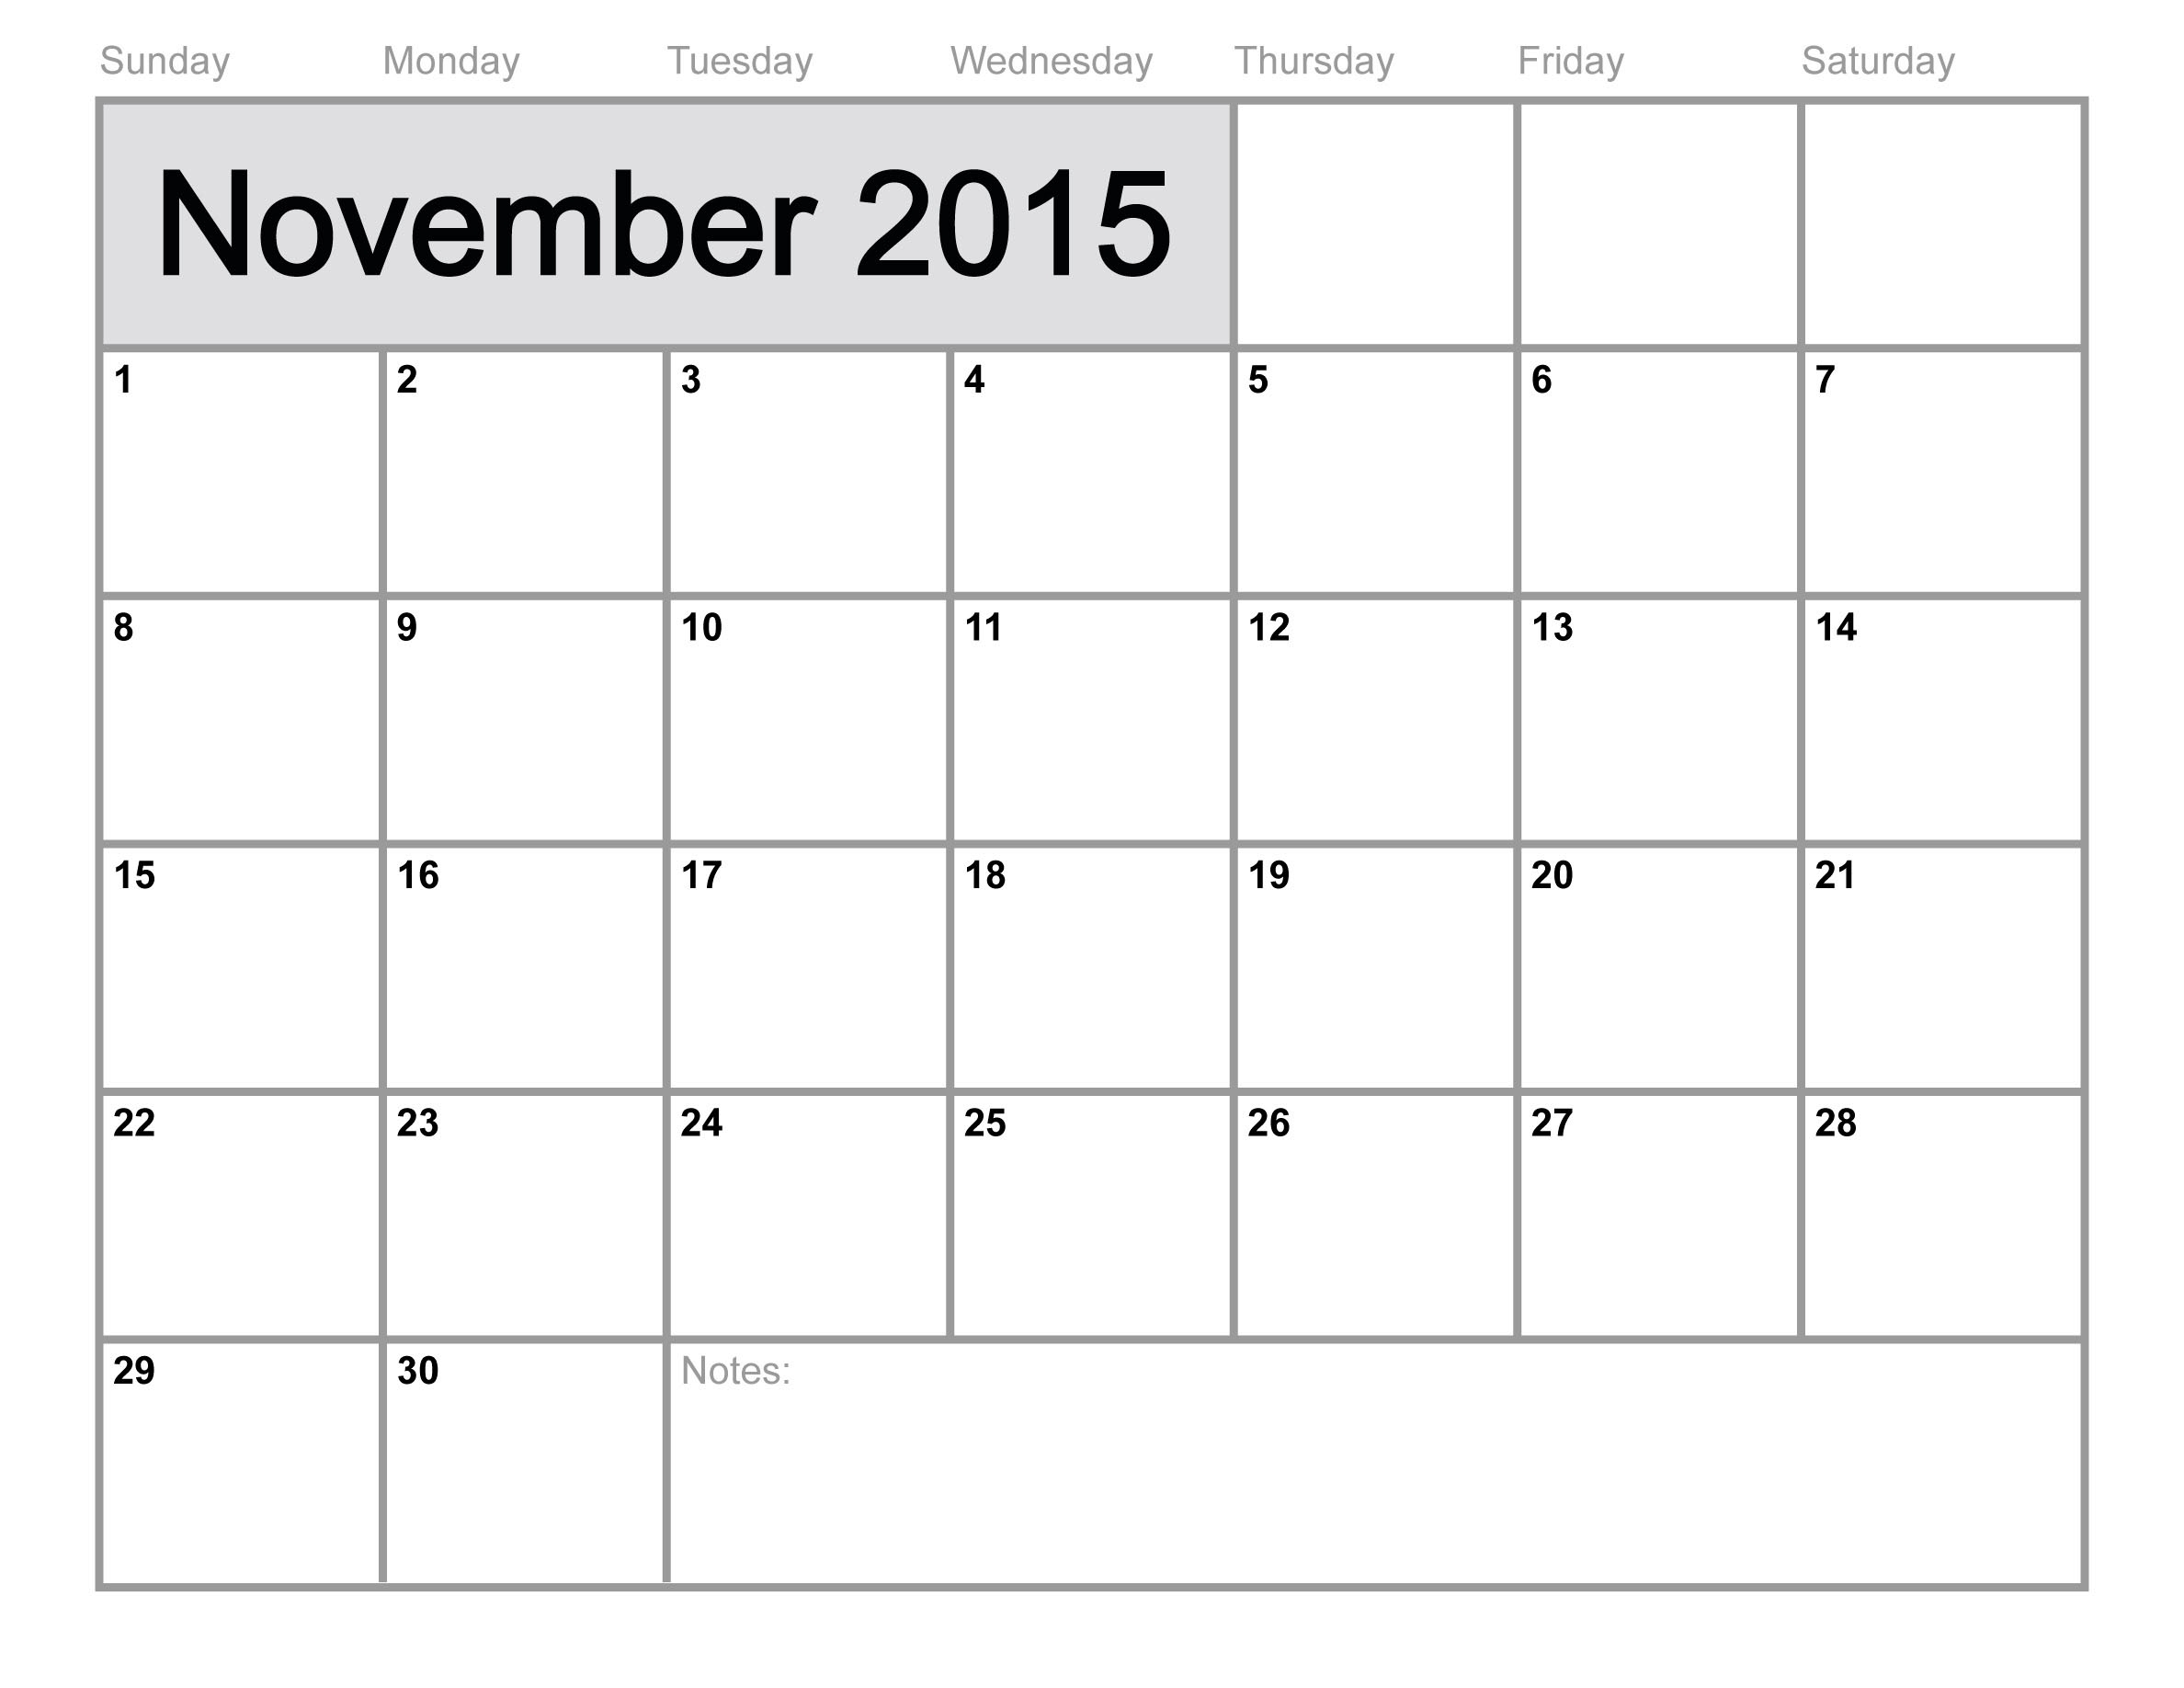 Monthly Calendar Template 2015 - Wallofcoins.wallofcoins.tk throughout Editable 2015 Monthly Calendar Template